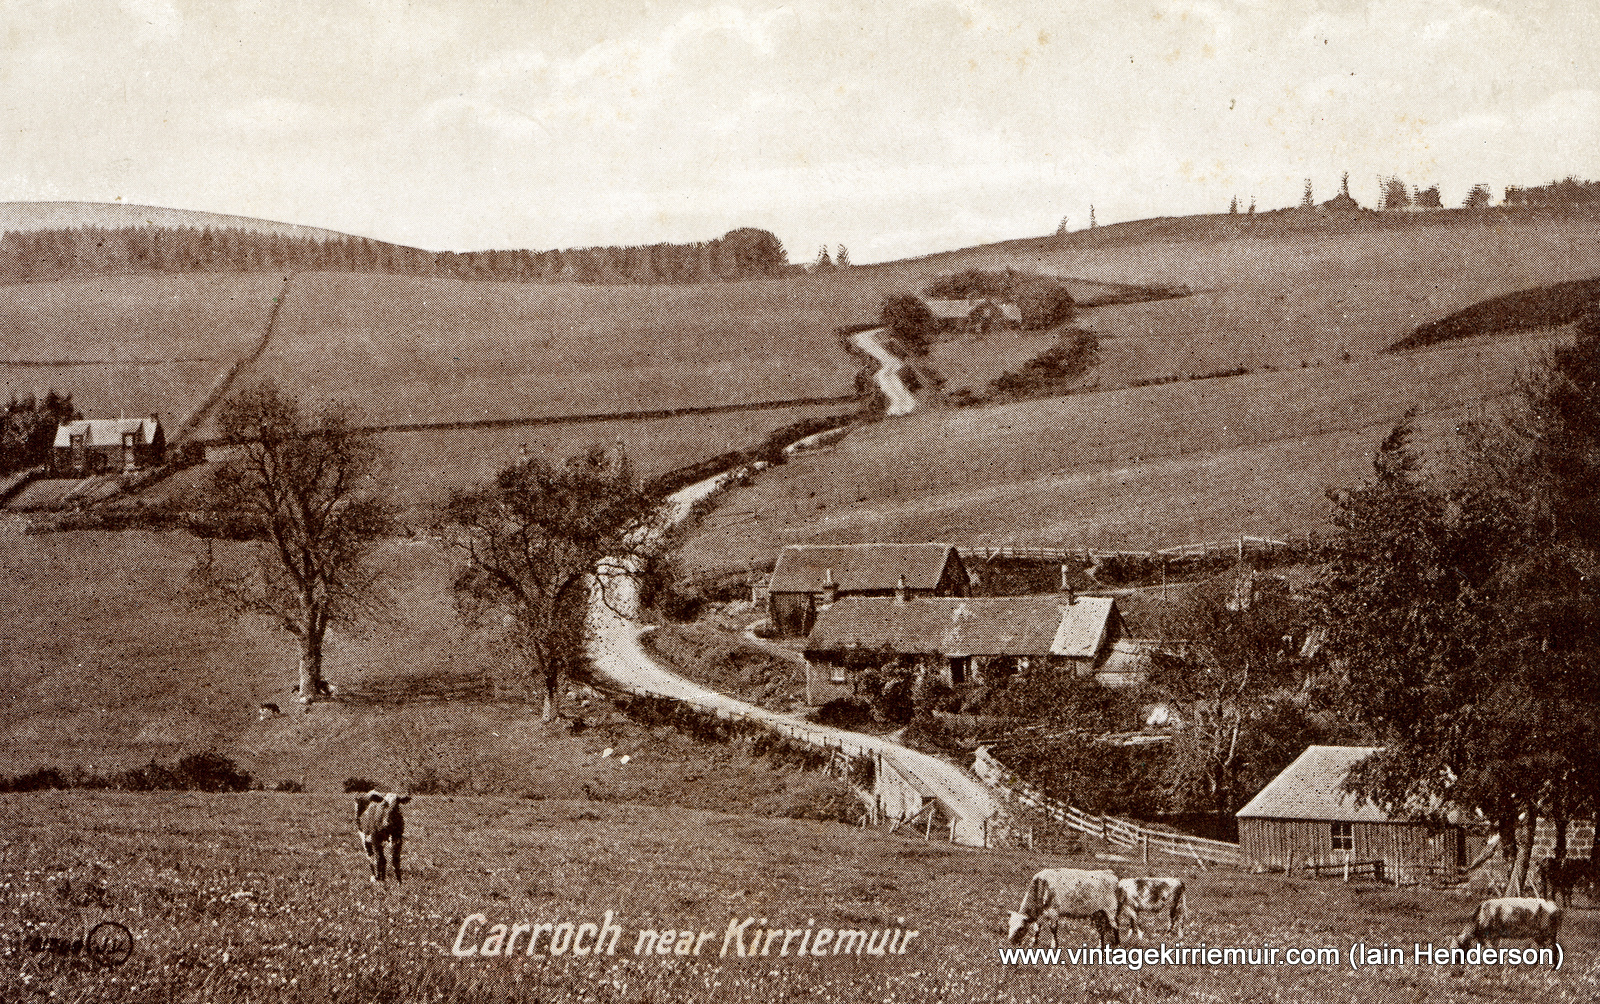 Carroch near Kirriemuir